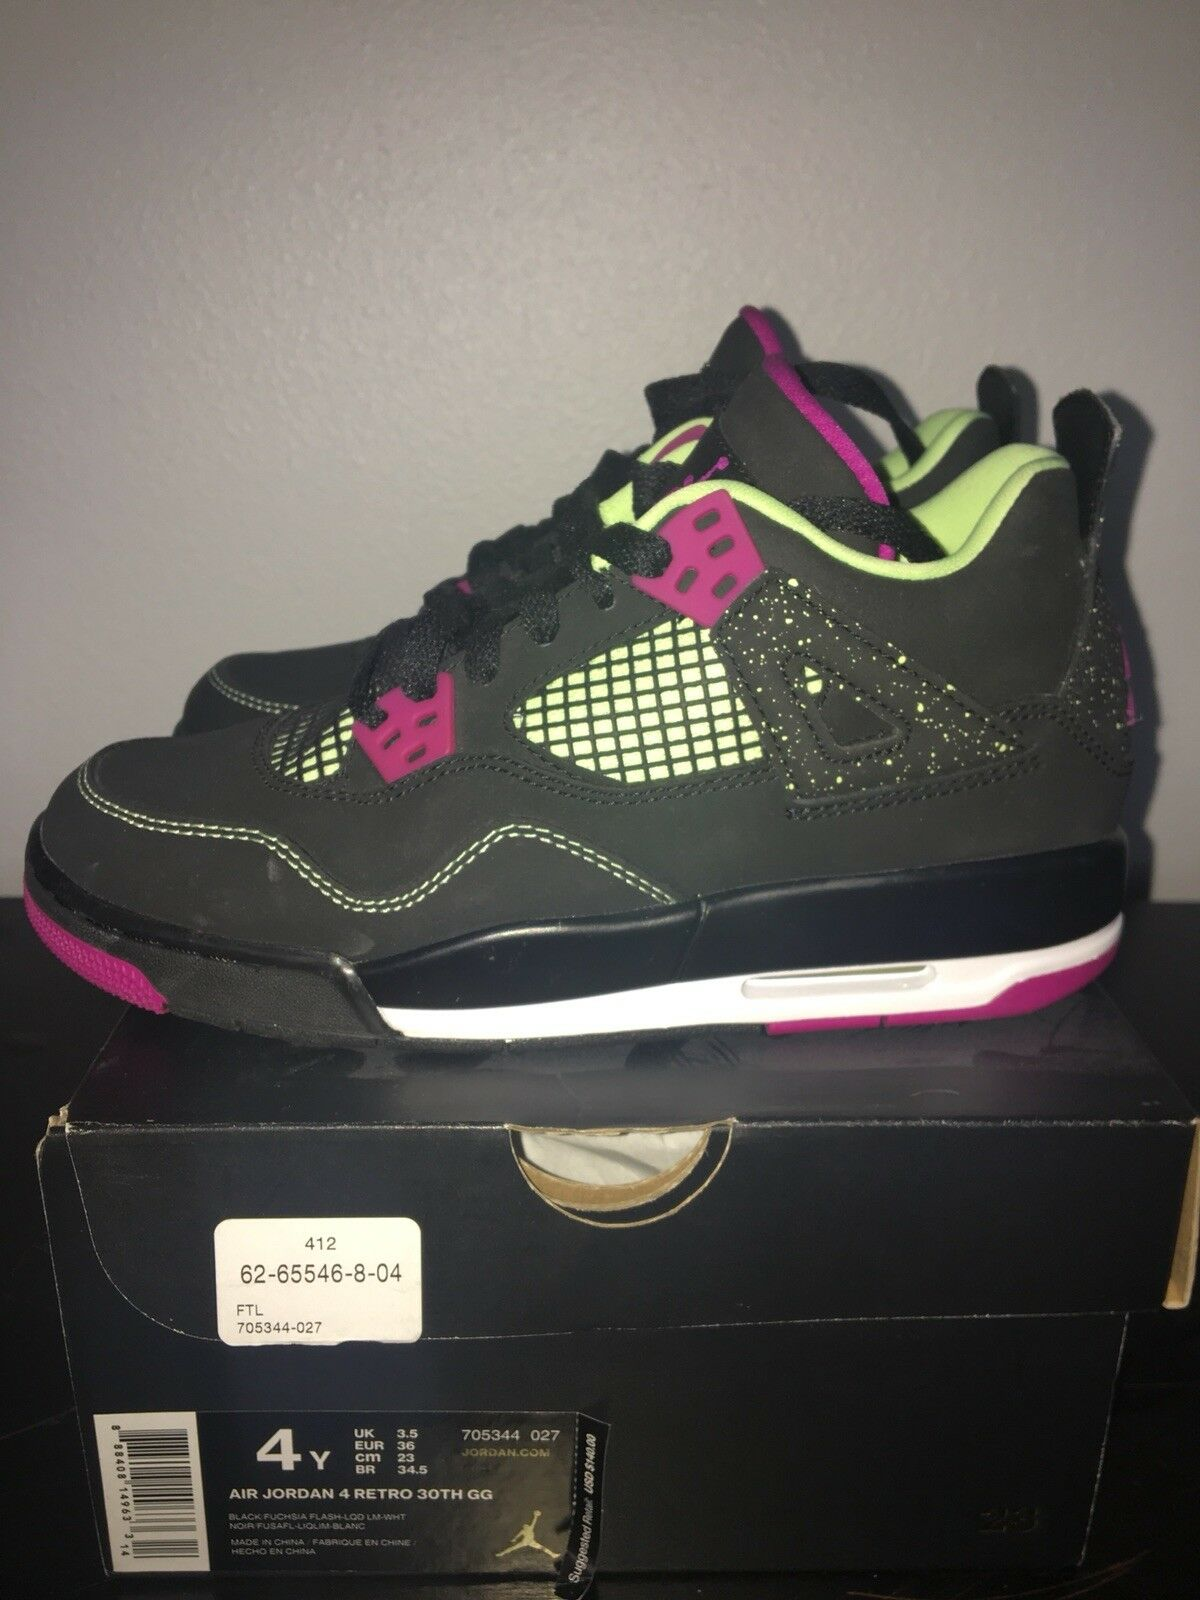 Air Jordan 4 Retro 30th gs 4y Black fuscia lime